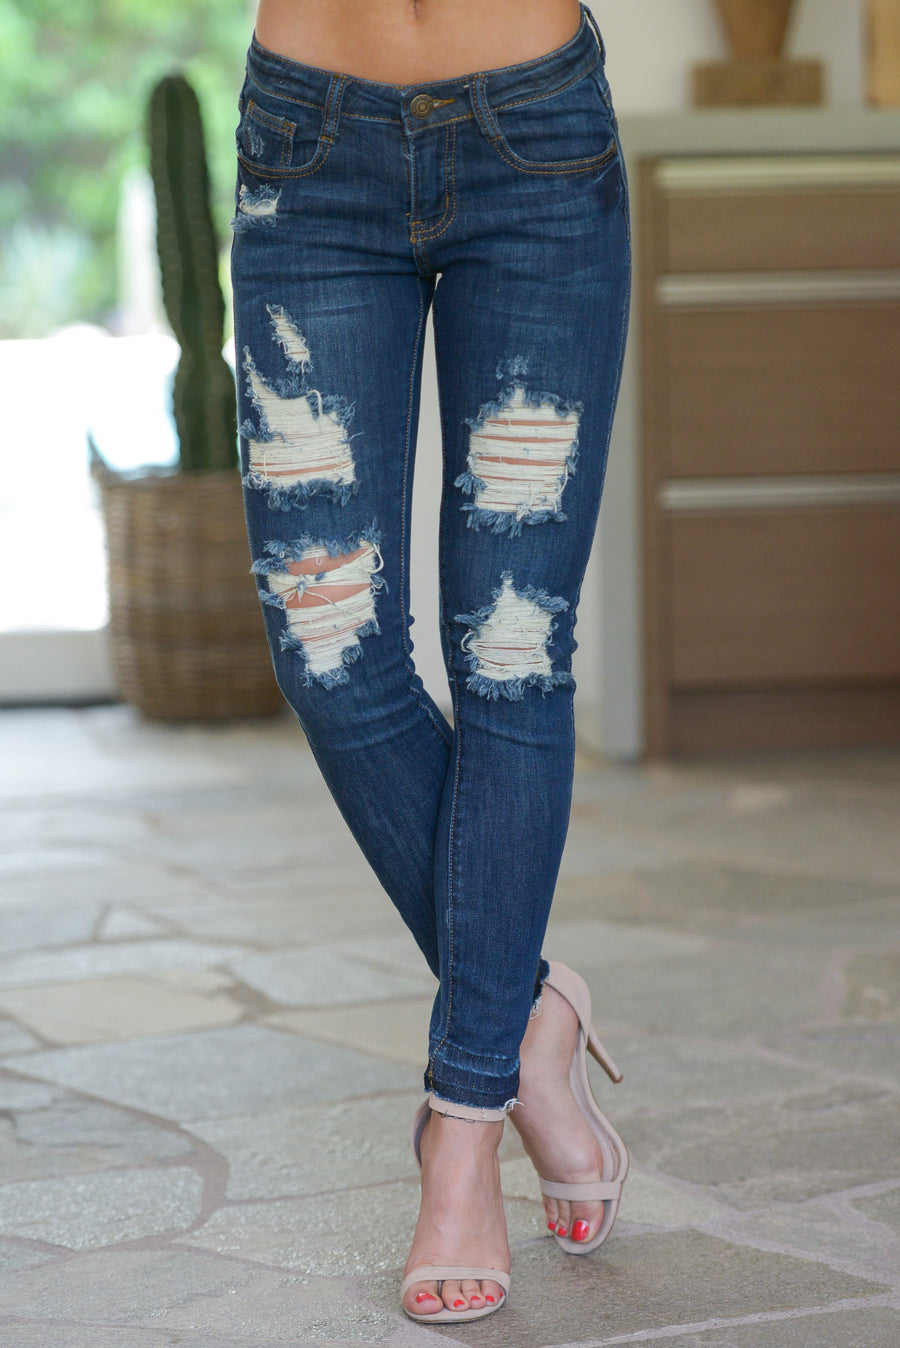 MACHINE Distressed Jeans W/ Released Hem - Dark Wash trendy skinny jeans closet candy boutique 1